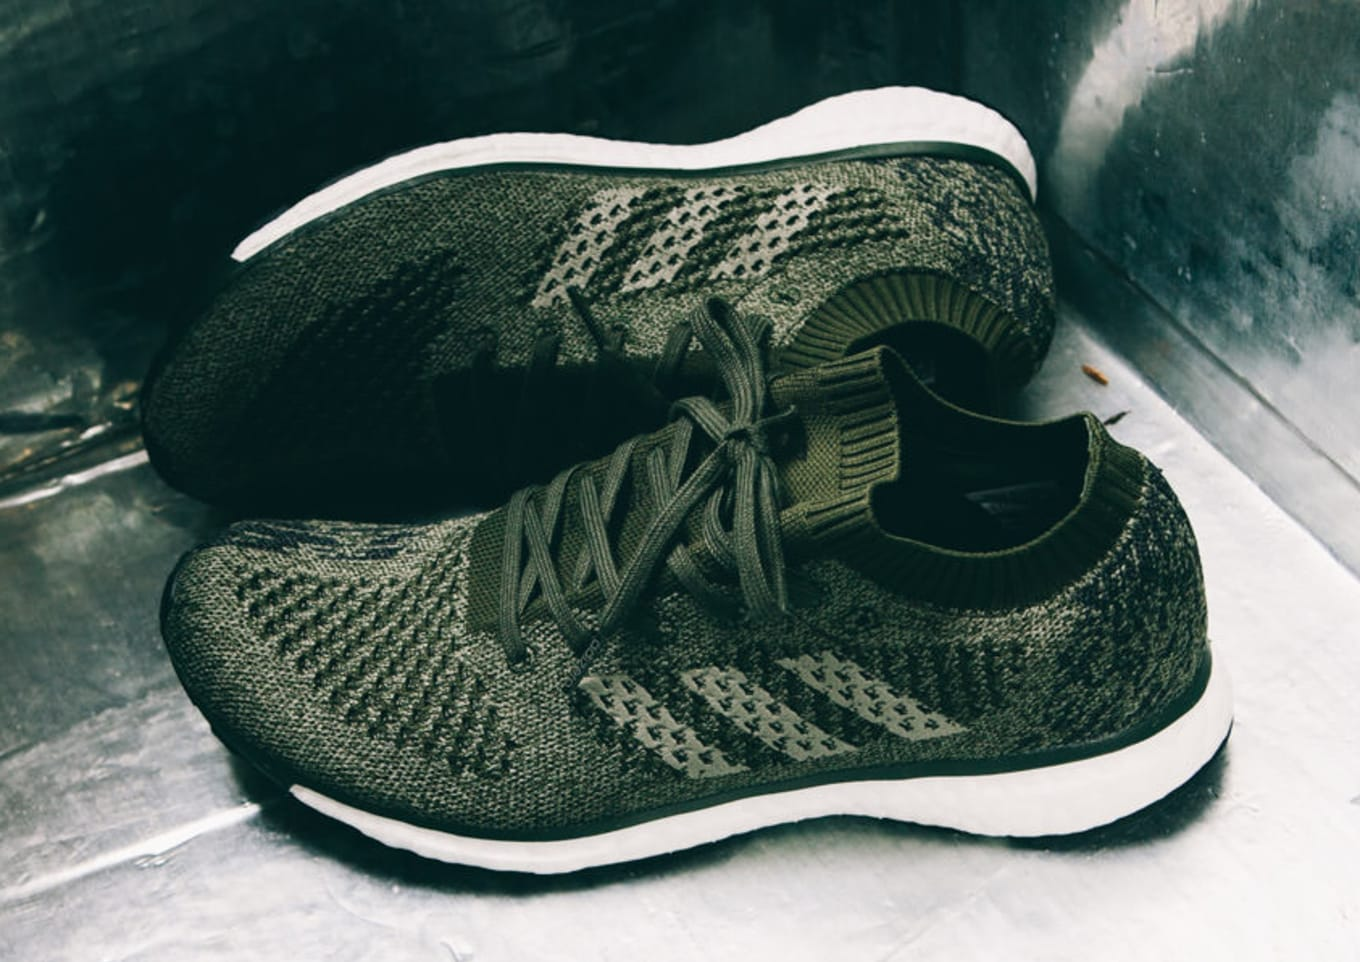 new product dad1e 6d744 Check out the olive colorway for the AdiZero Prime.